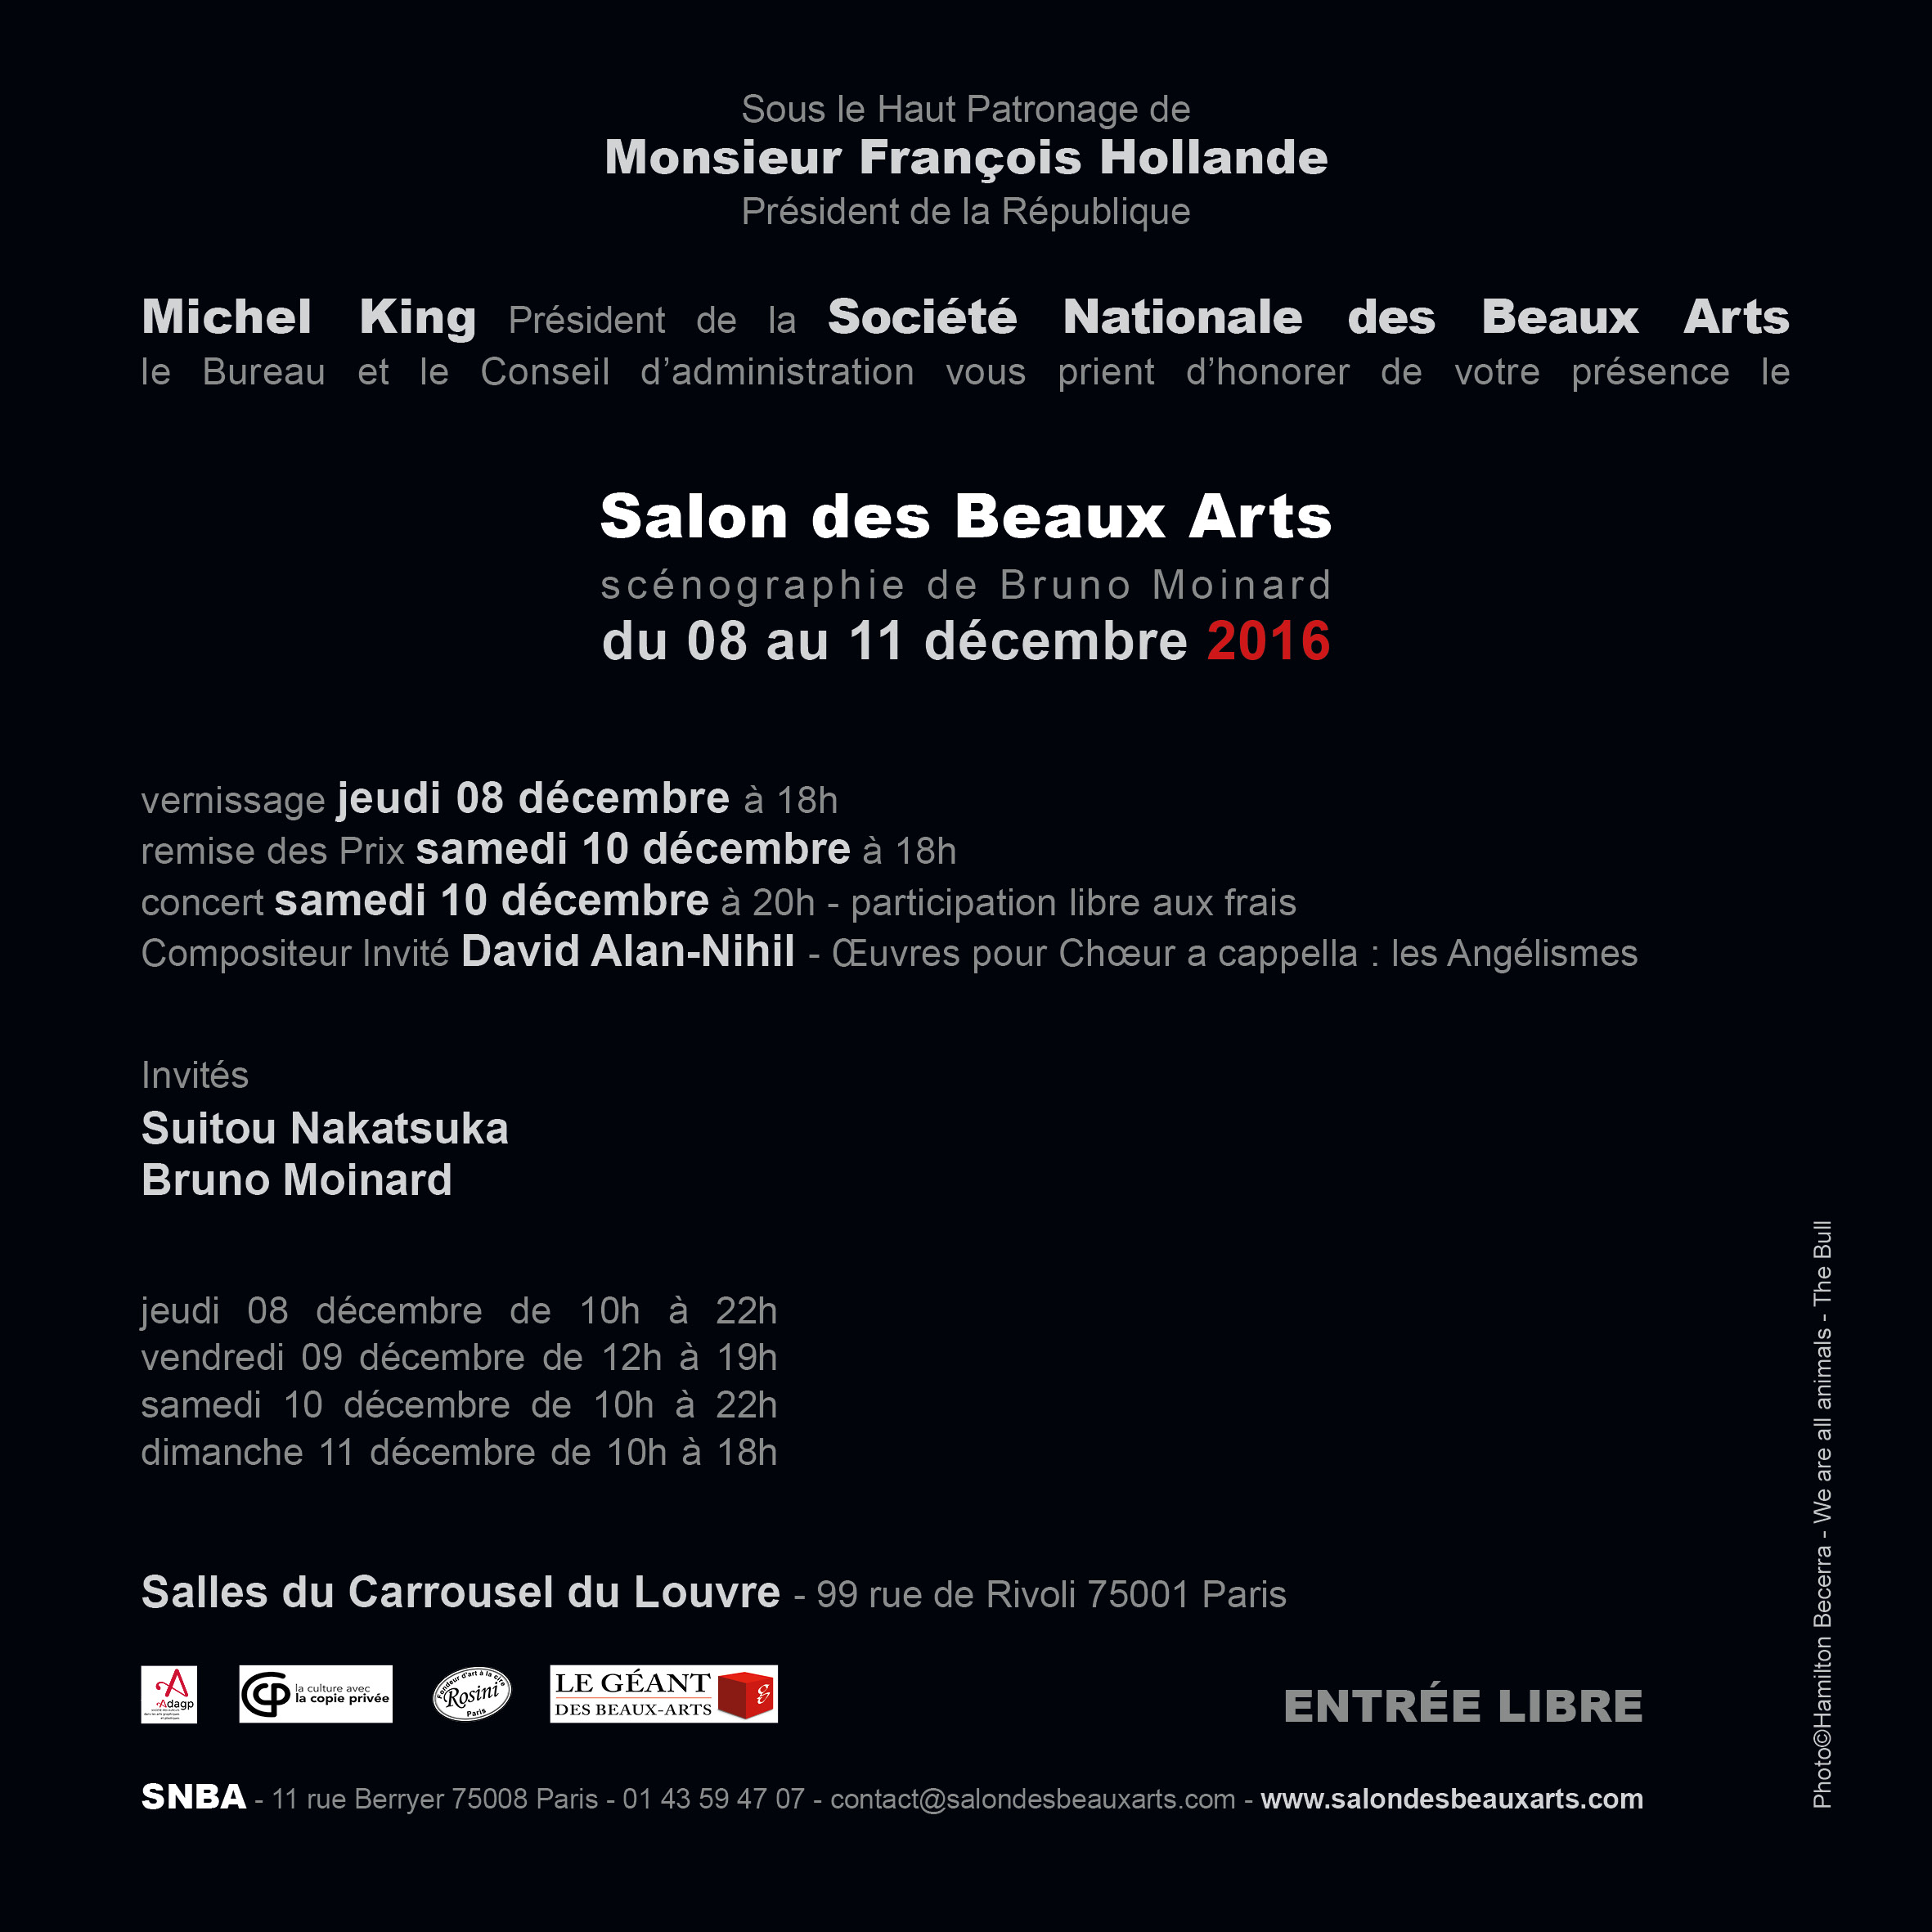 Invitation Salon des Beaux Arts HB verso.jpg